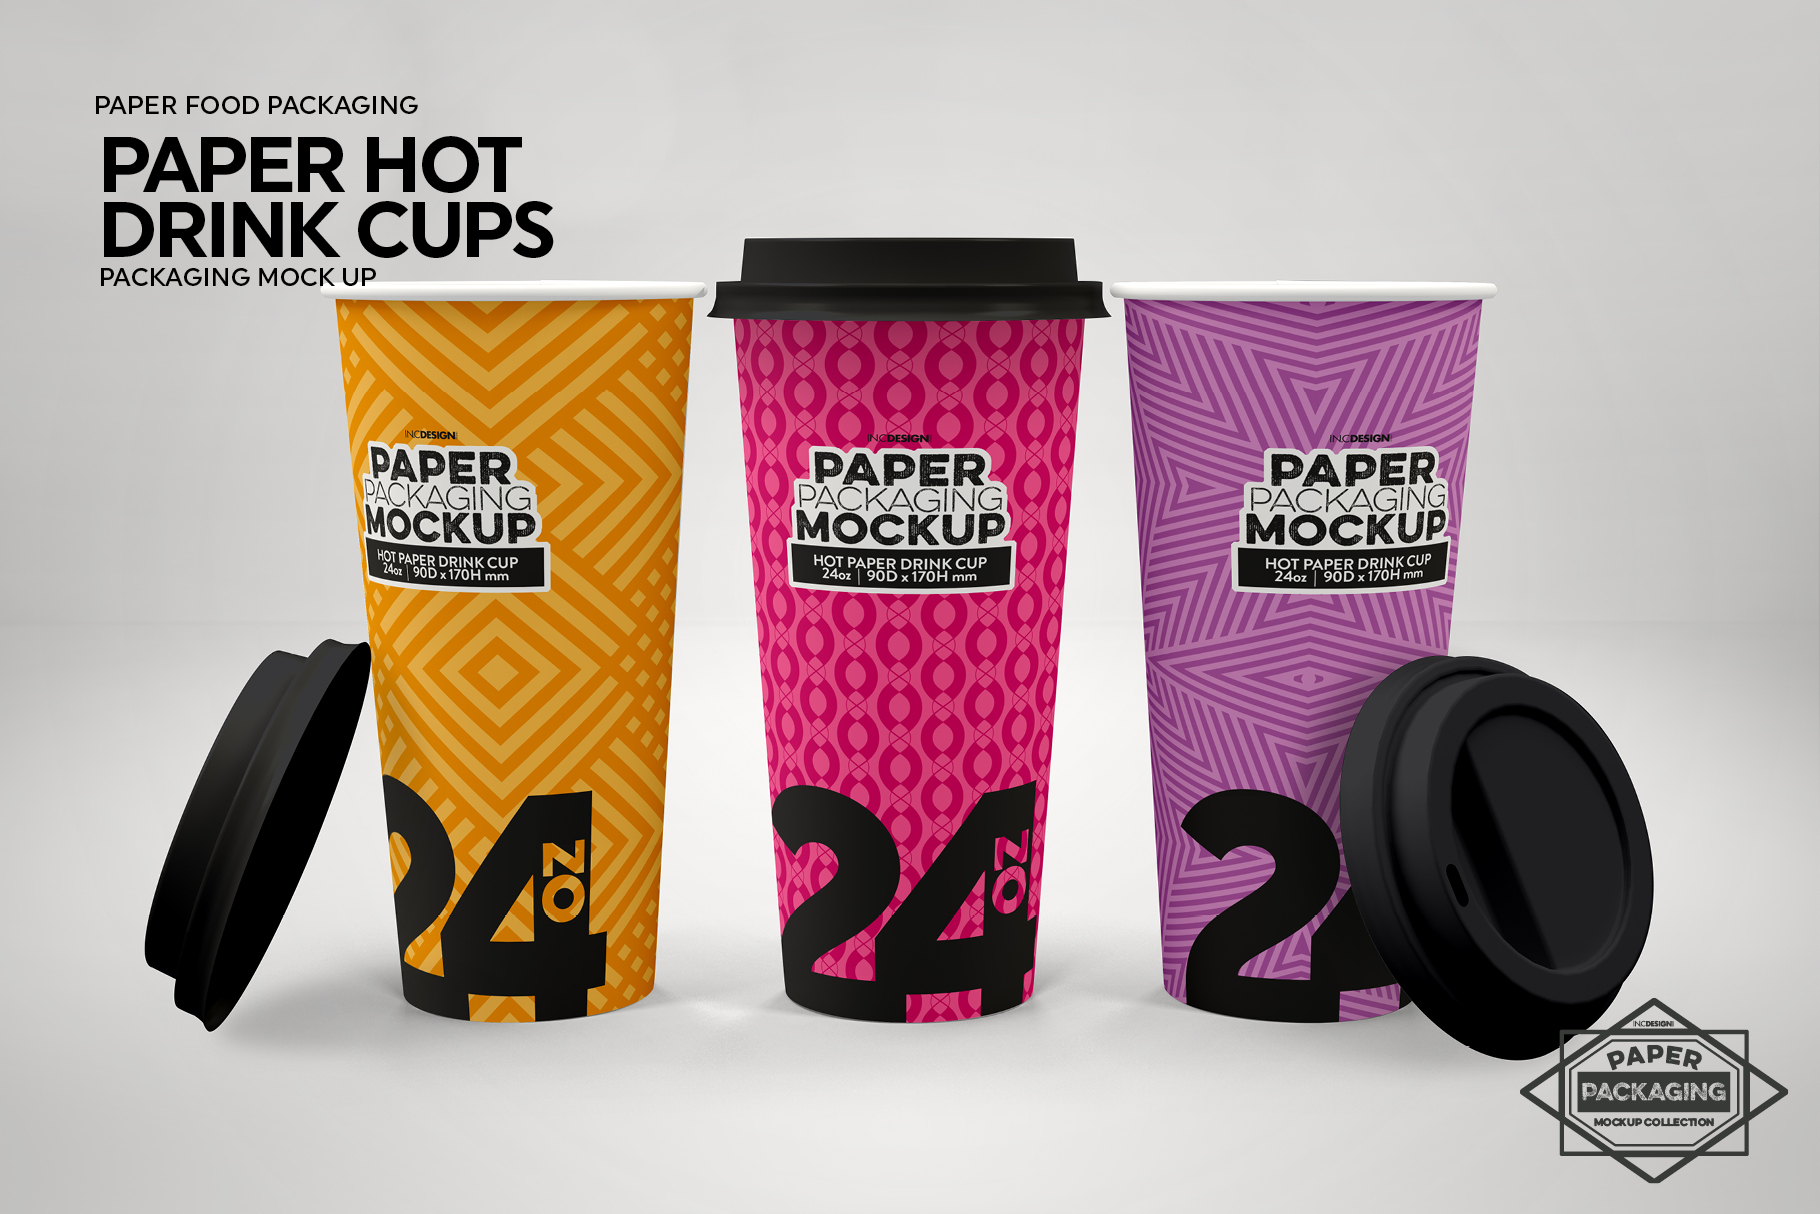 Paper Hot Drink Cups Packaging Mockup example image 7